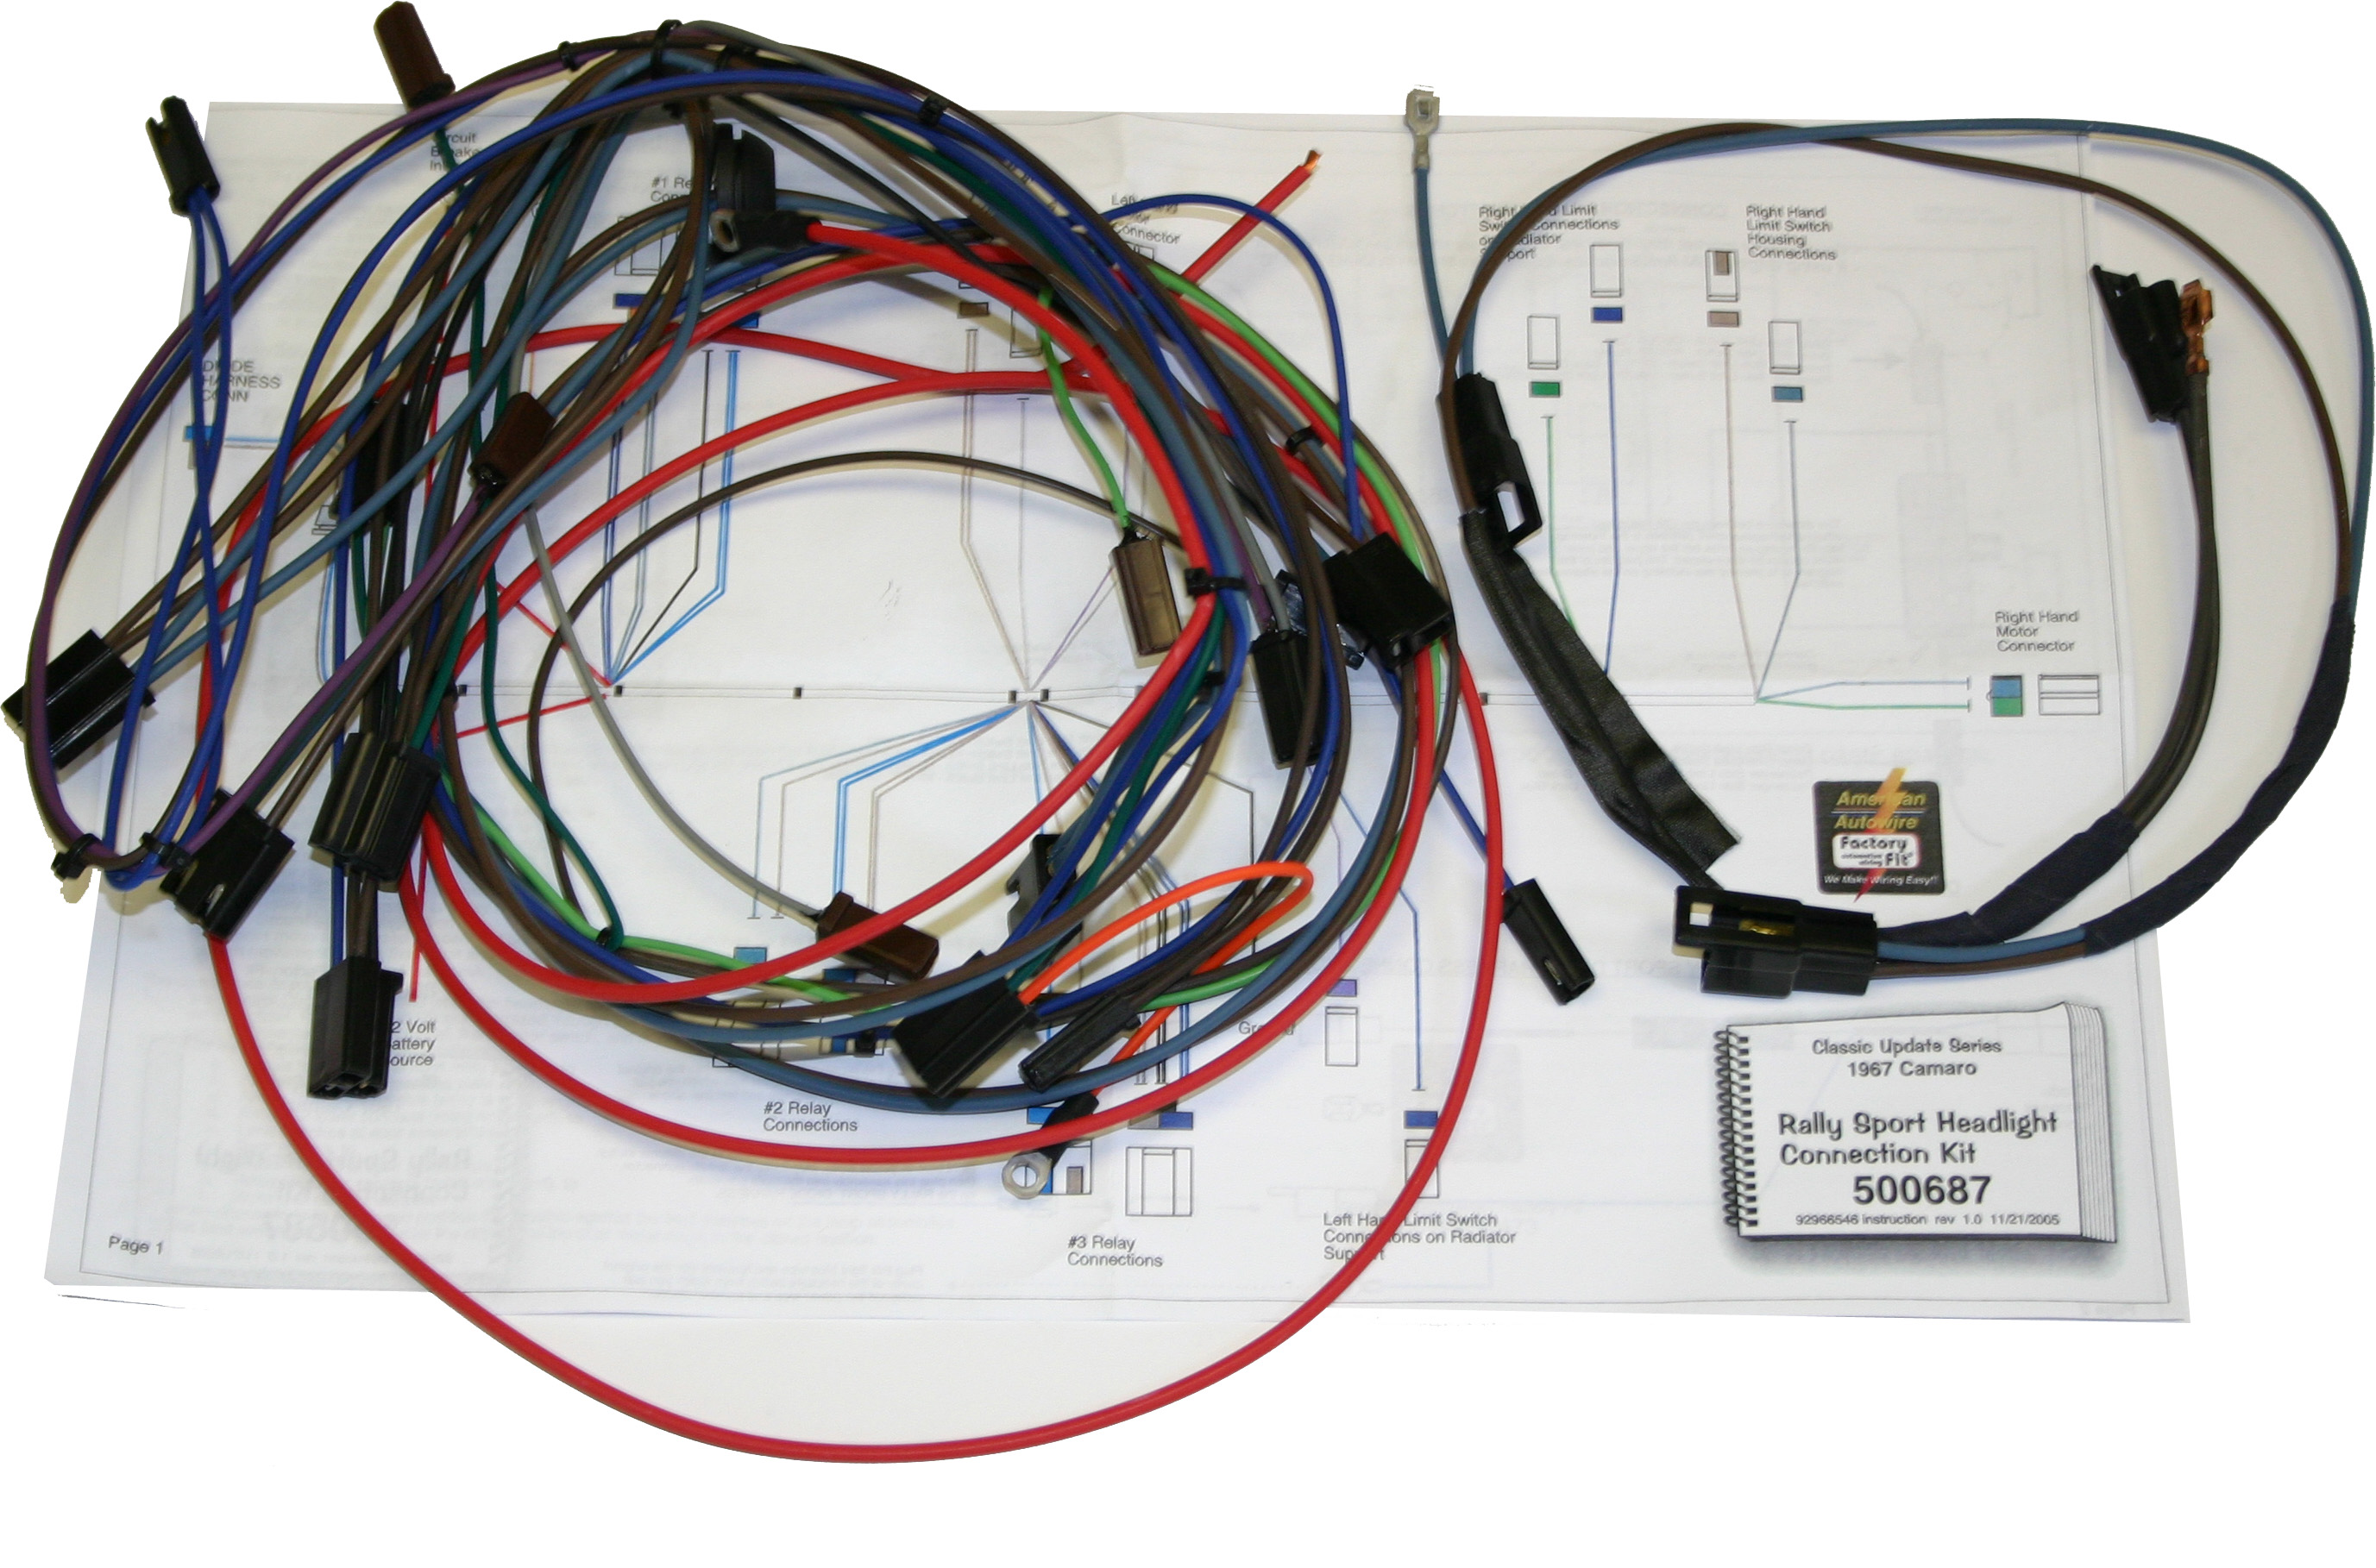 67 68 Camaro Classic Update Wiring Harness 500661 64 Impala Headlight Diagram